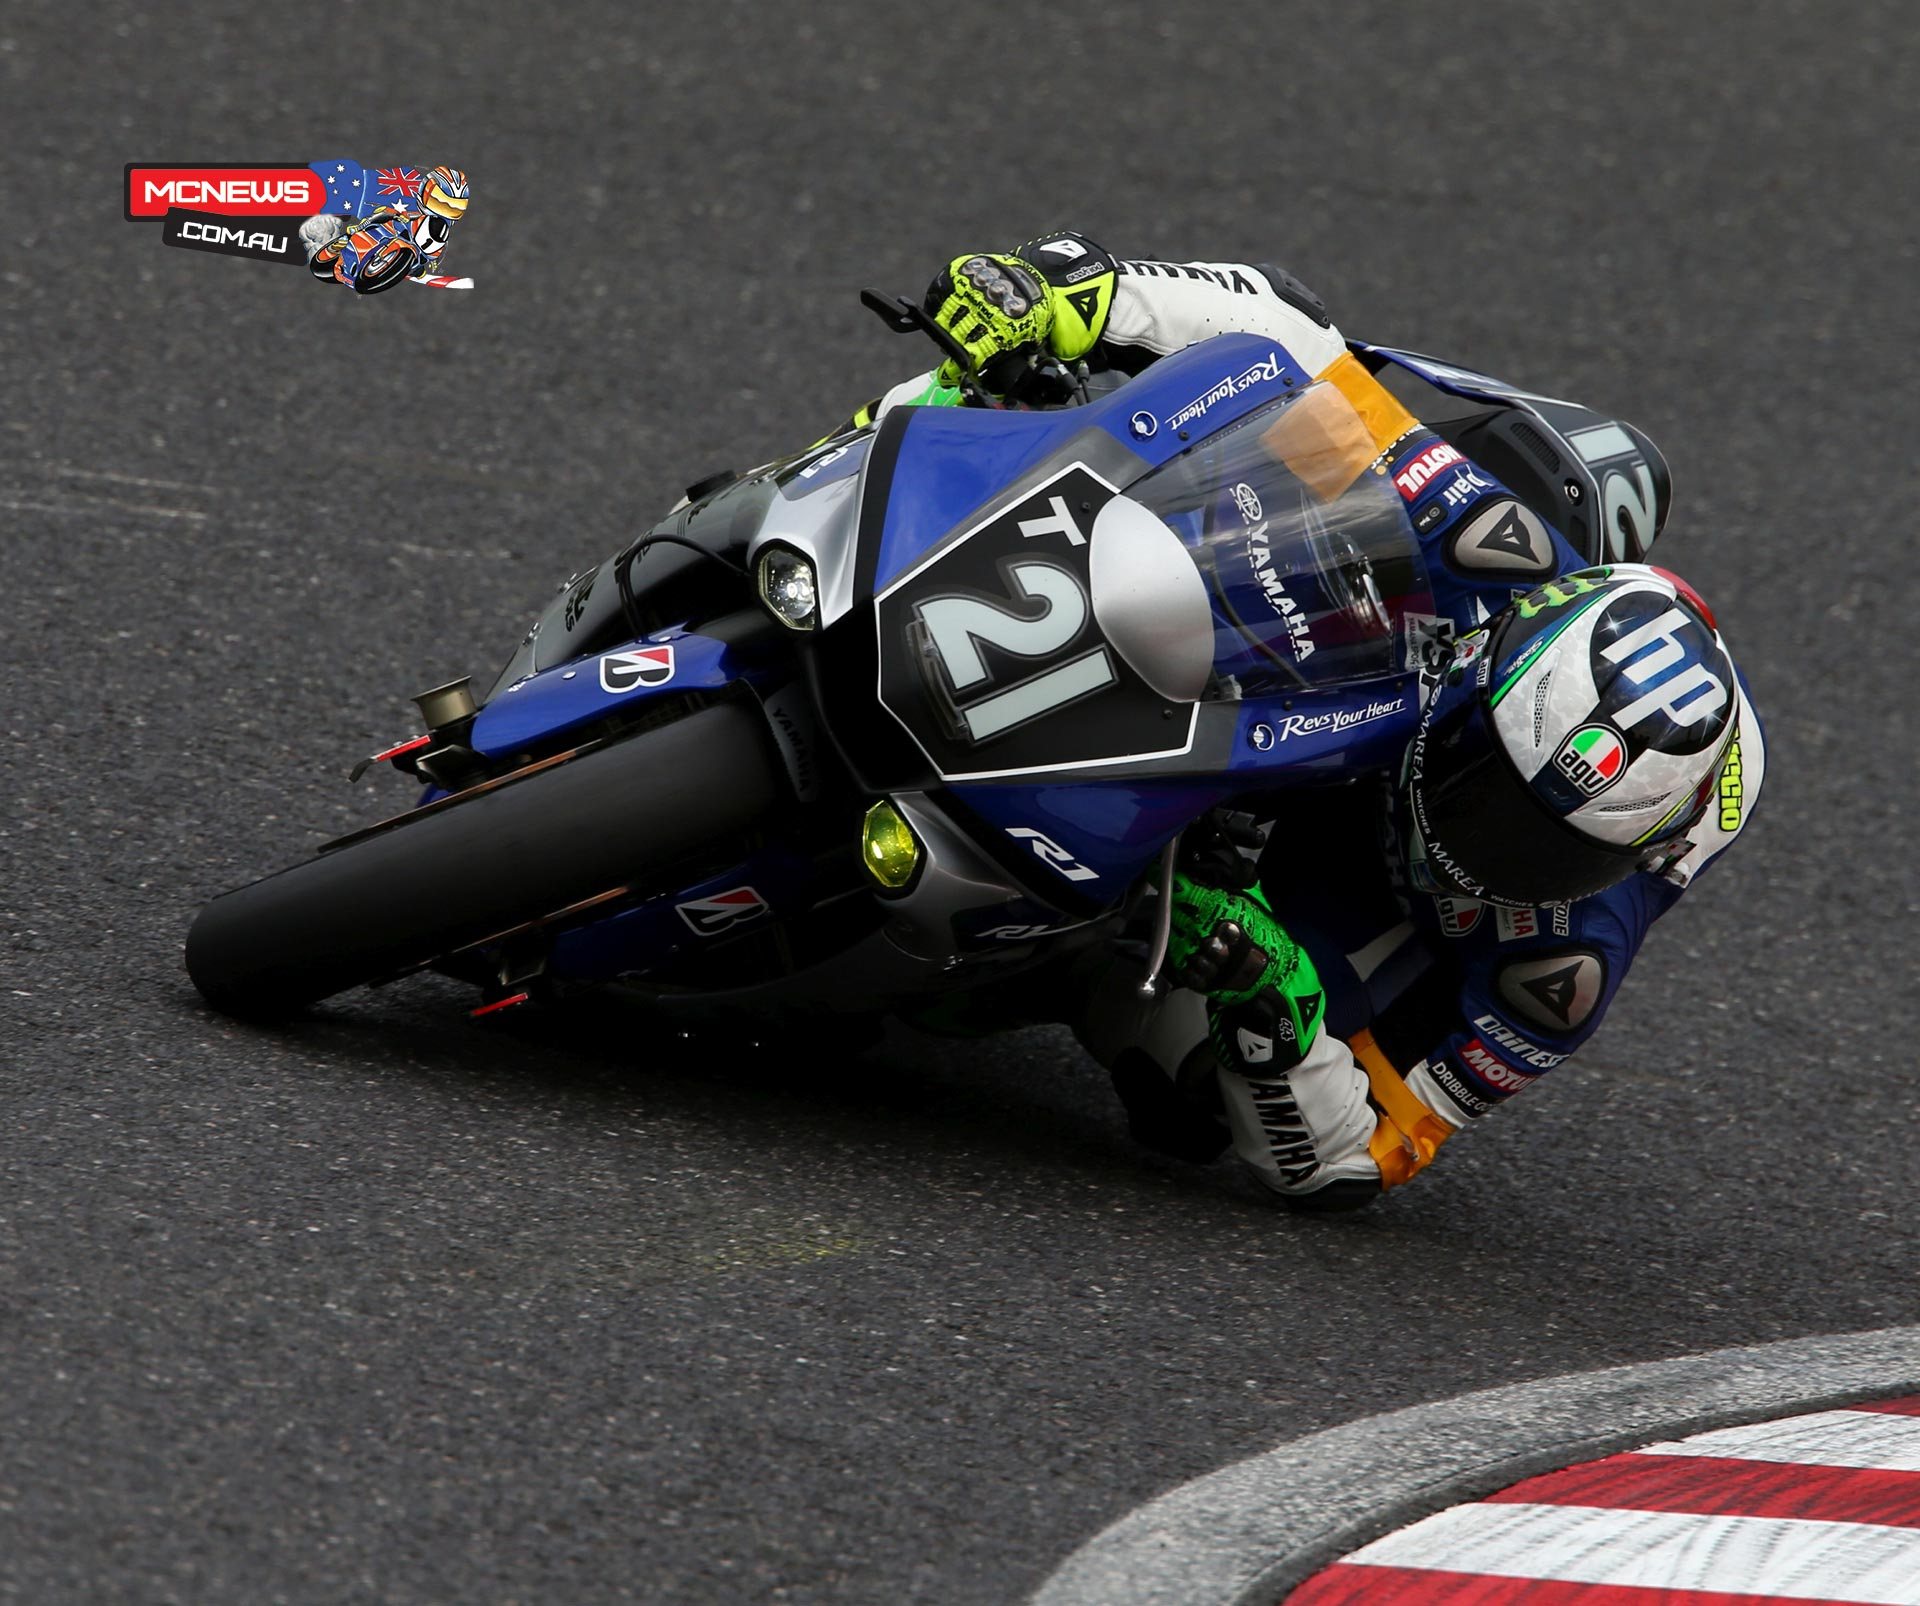 Yamaha Factory Racing Team rider Pol Espargaro rode a lap to remember in Saturday's Top 10 Trial at Suzuka Circuit, setting a new unofficial lap record time of 2'06.000 to put himself and teammates Bradley Smith and Katsuyuki Nakasuga on pole for the 38th Suzuka 8 Hours endurance race.